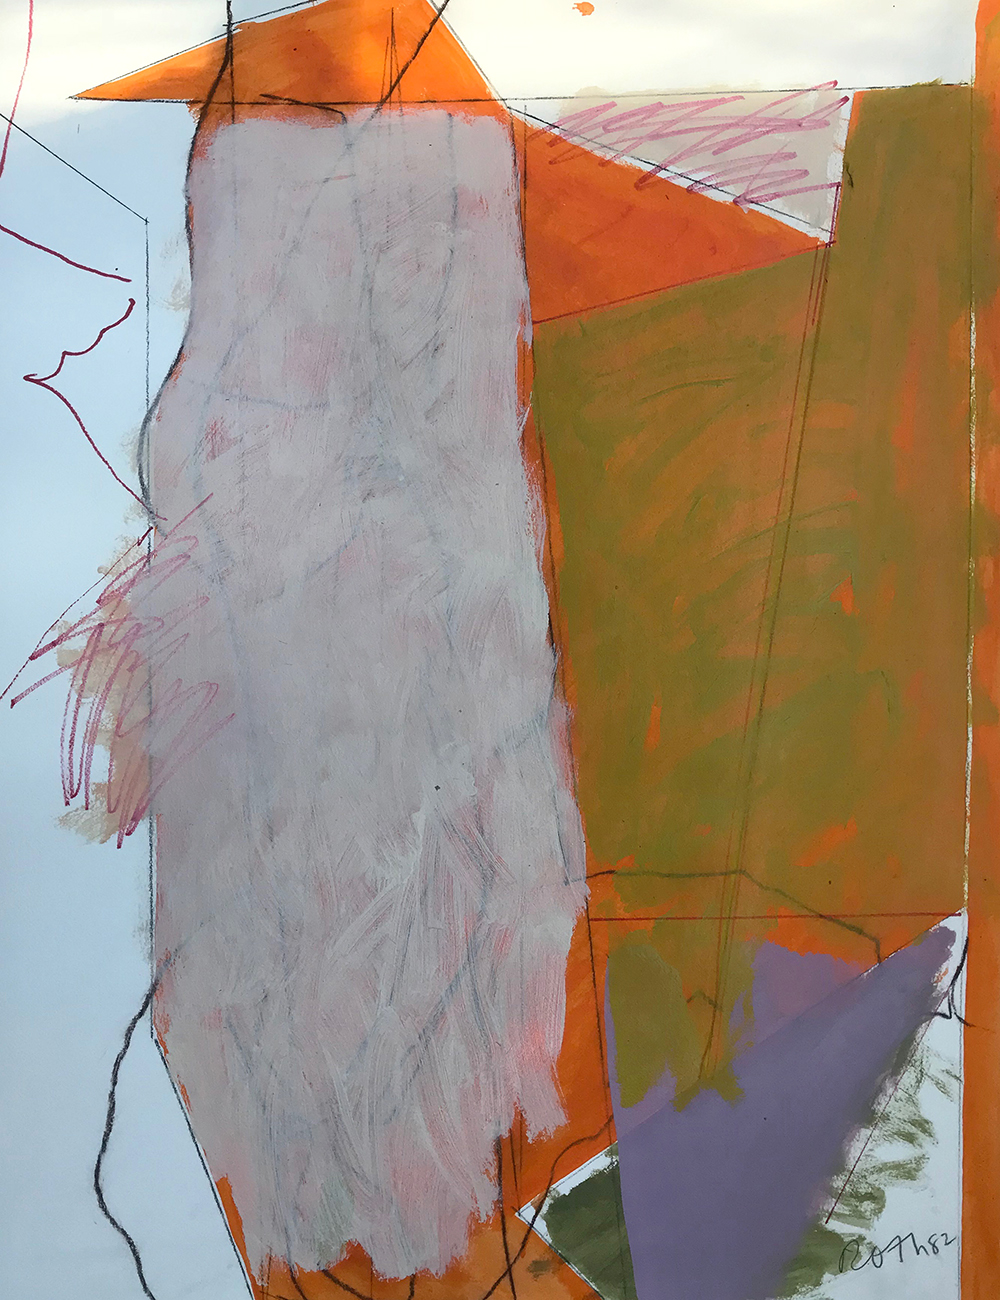 #2904 Untitled,   Acrylic and colored pencil on paper, 1982, 30 x 22 1/2 inches